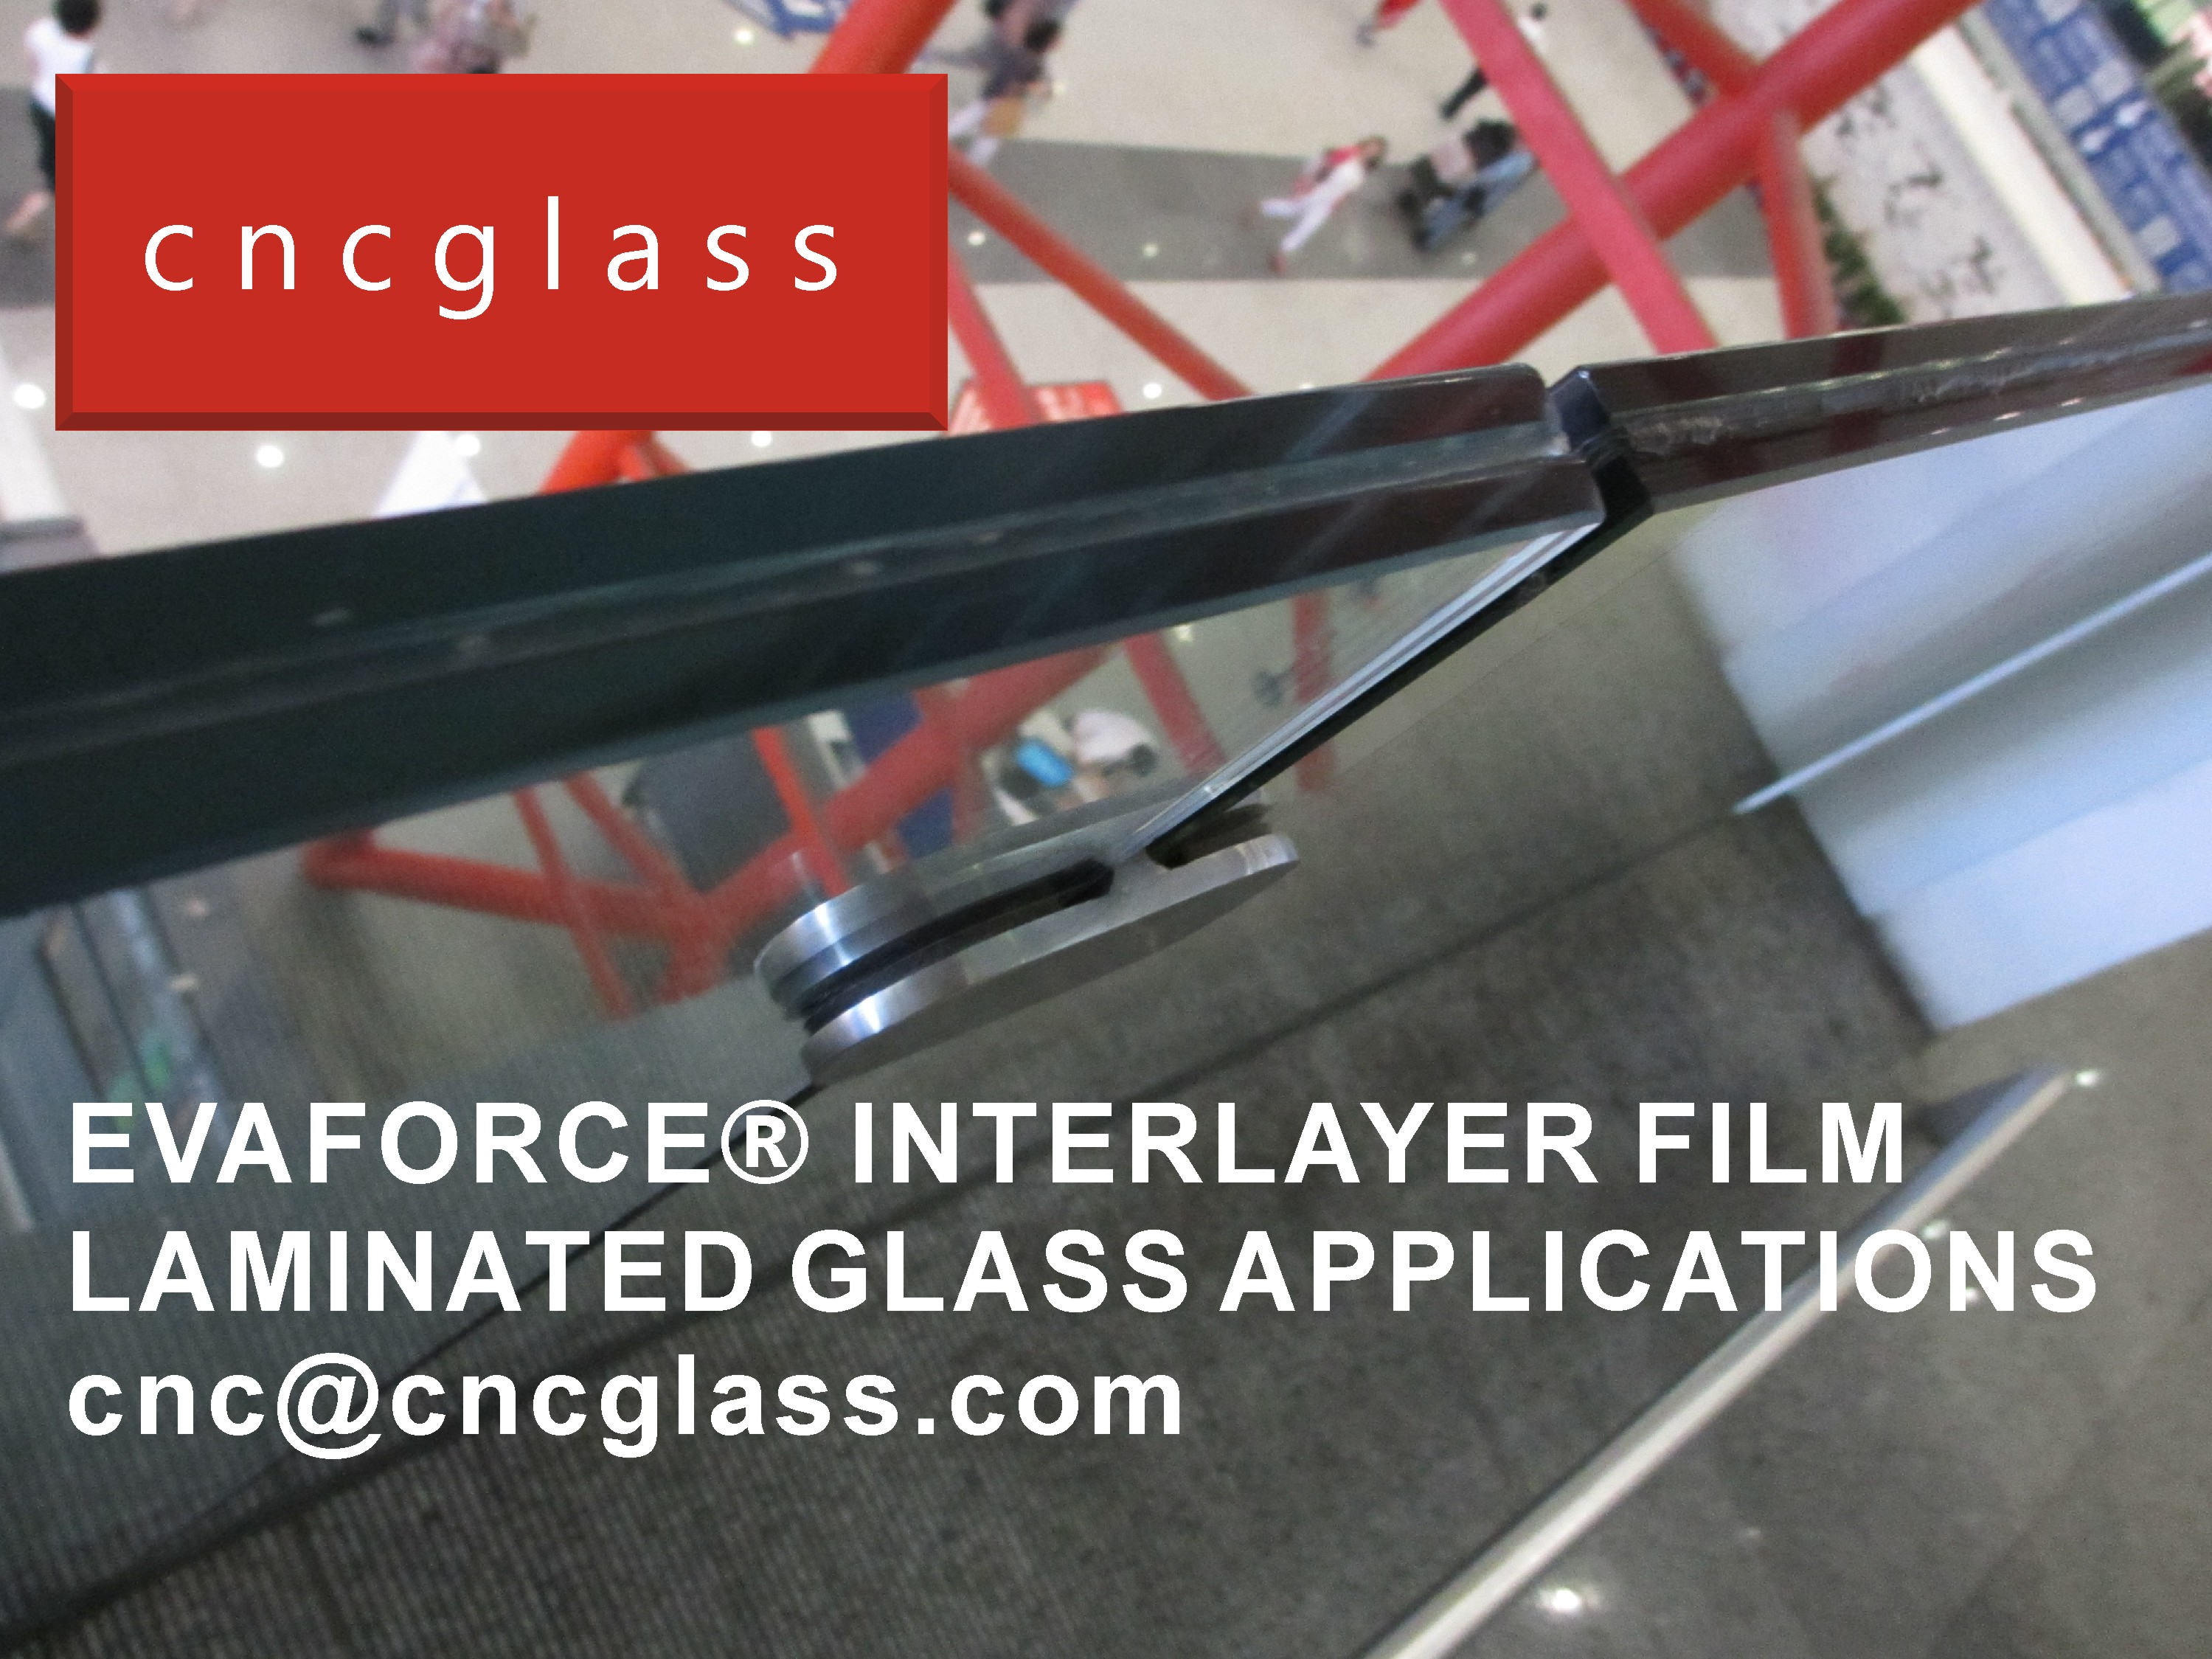 EVAFORCE INTERLAYER FILM LAMINATED GLASS APPLICATIONS (4)